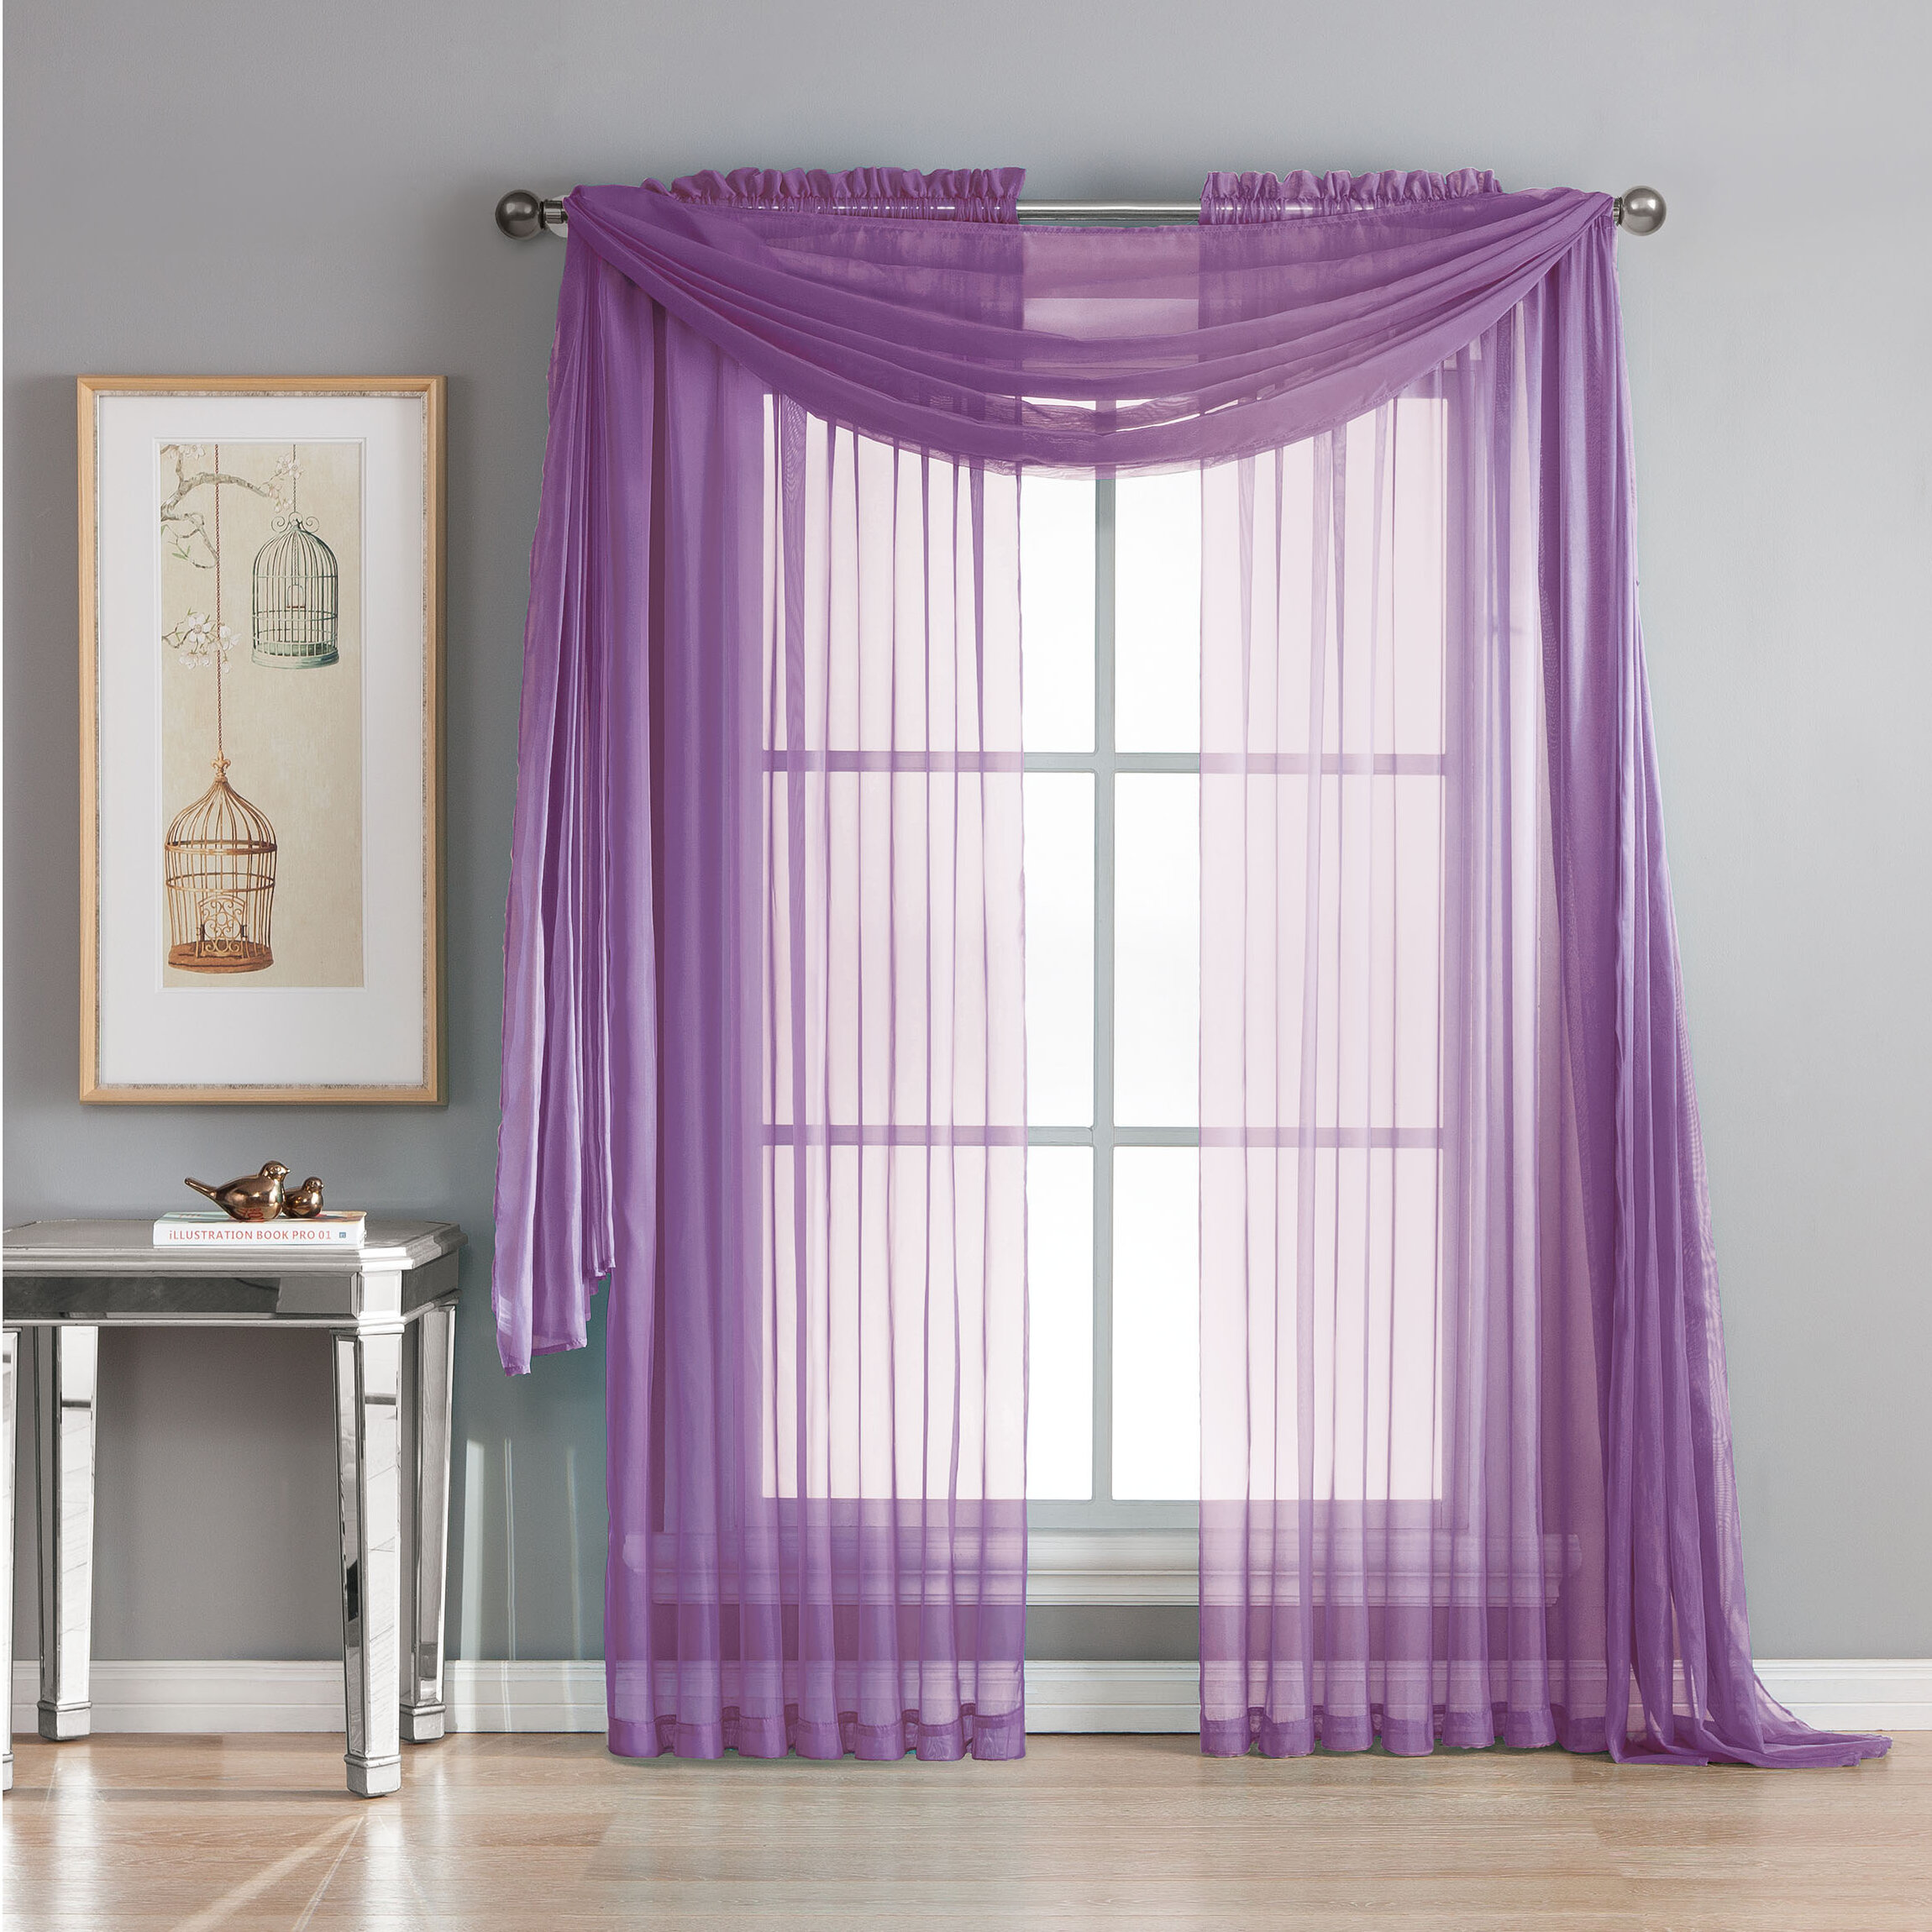 Idlewild Extra Wide Voile Solid Sheer